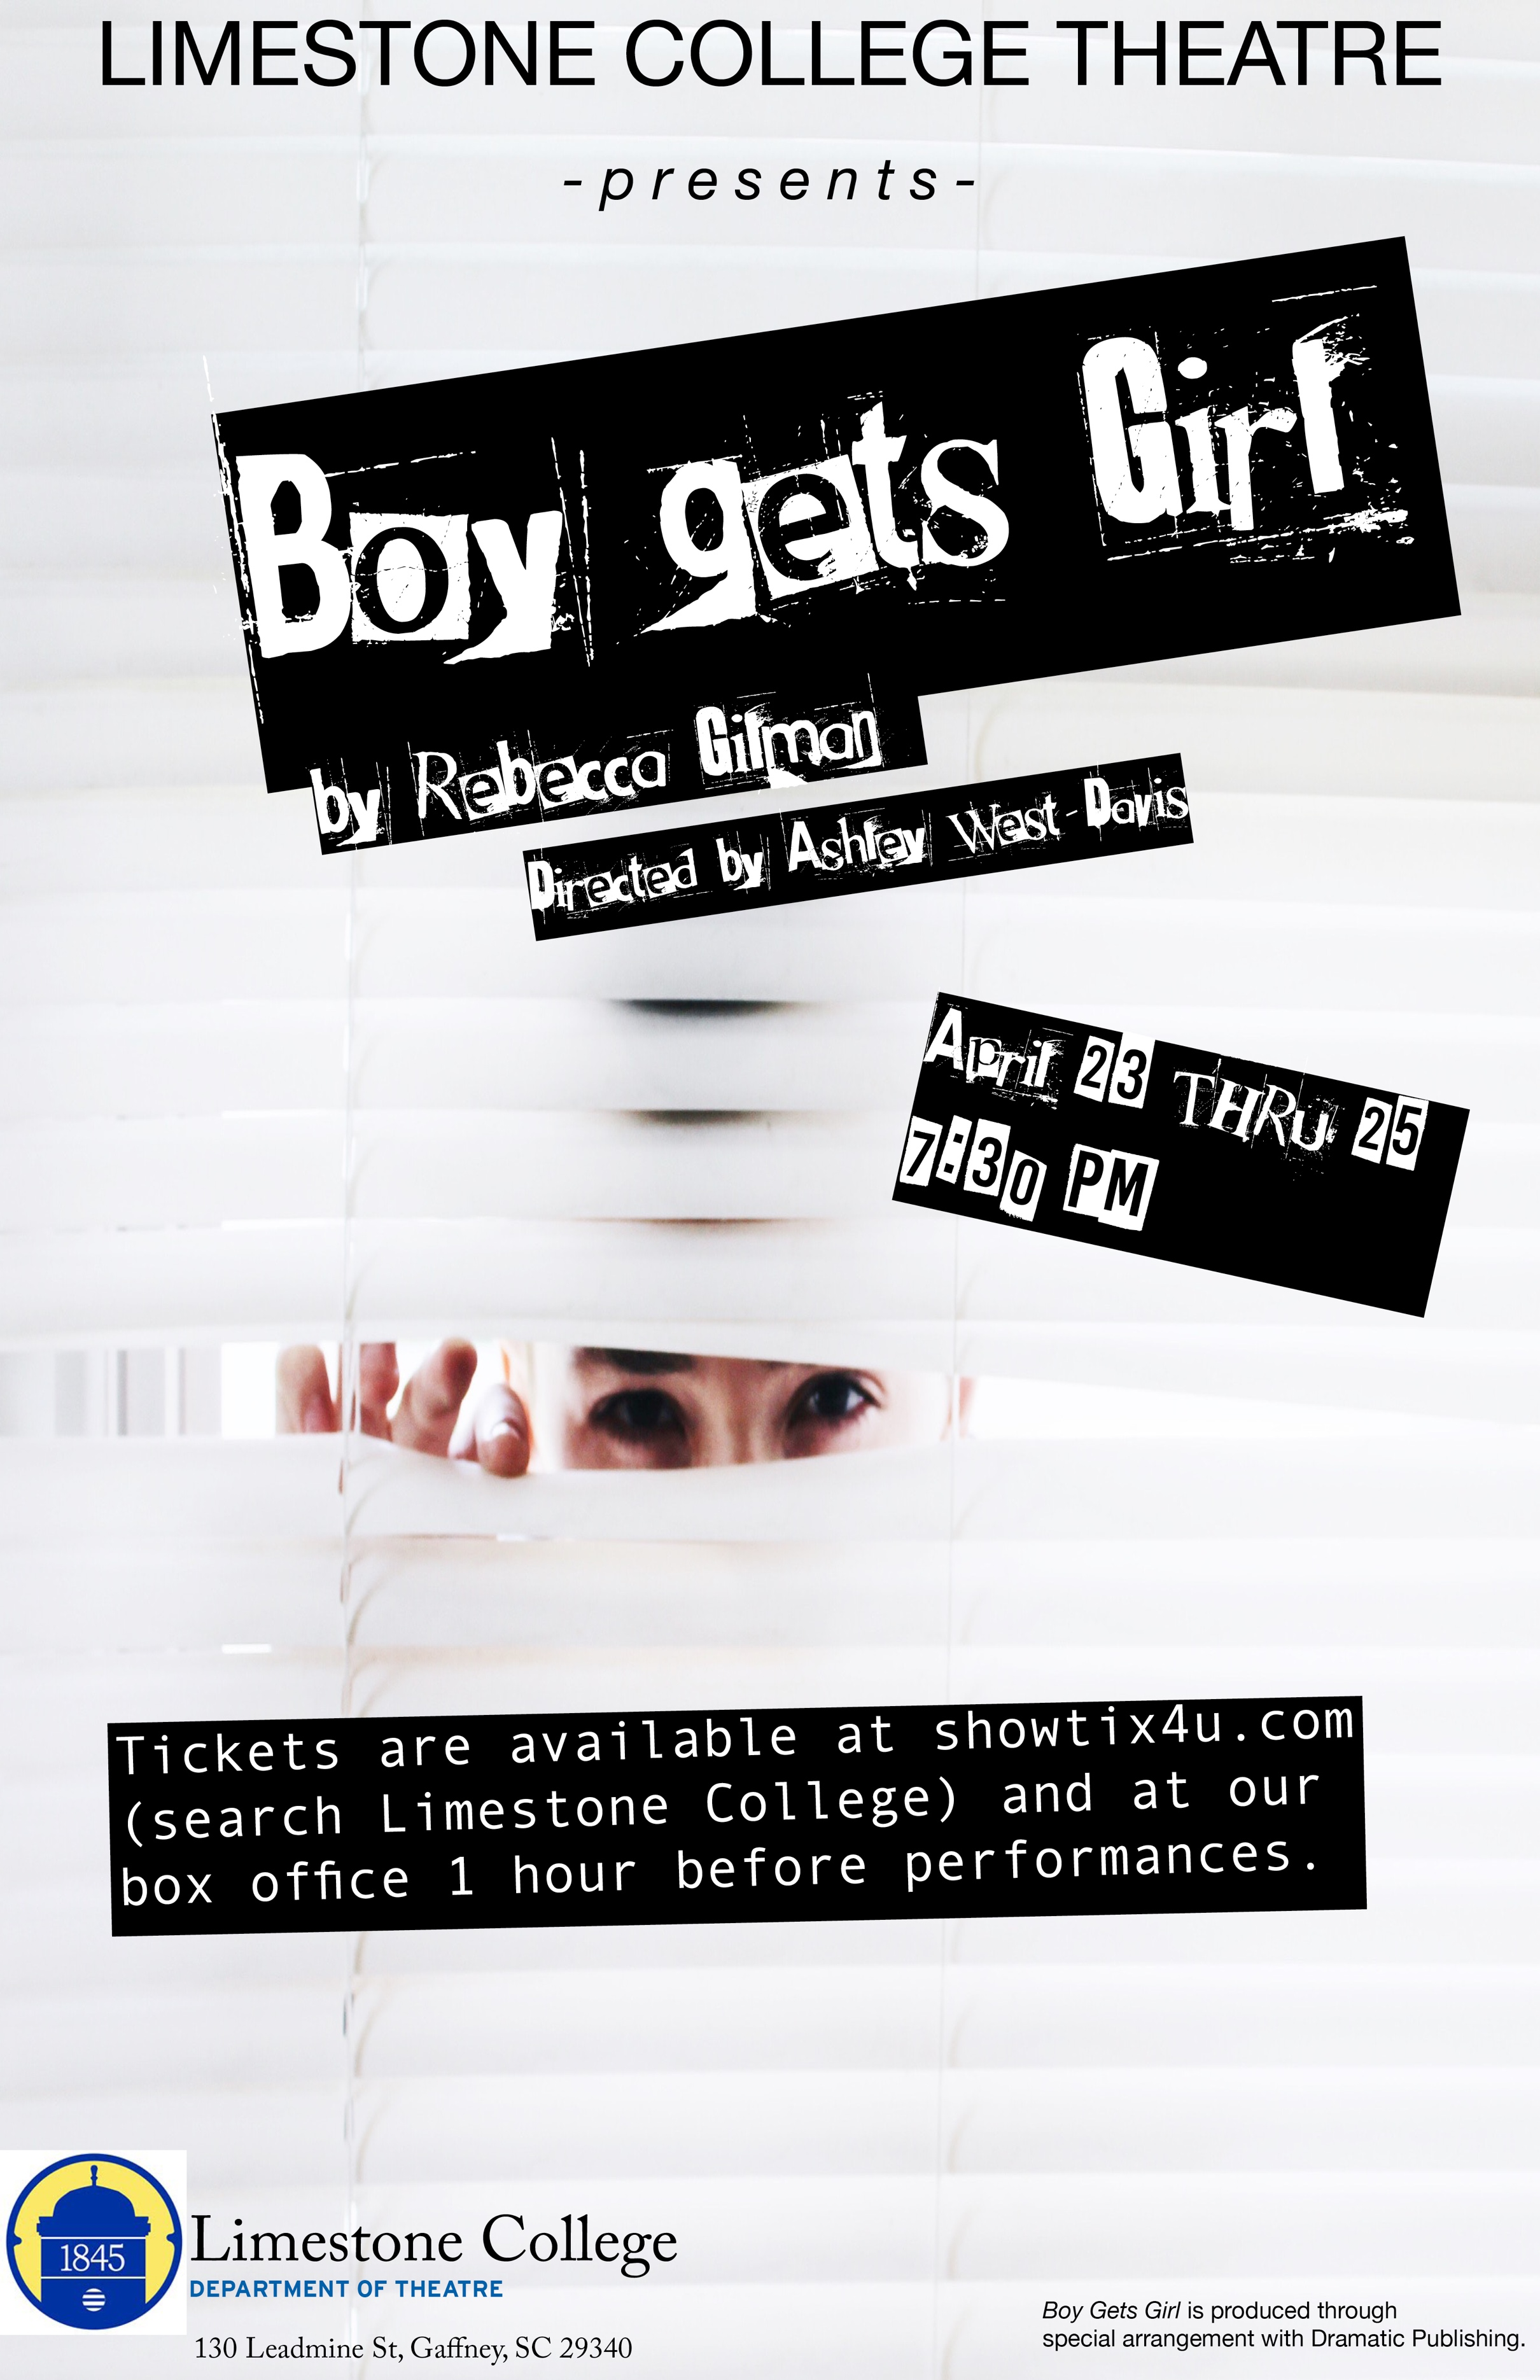 Boy Gets Girl production